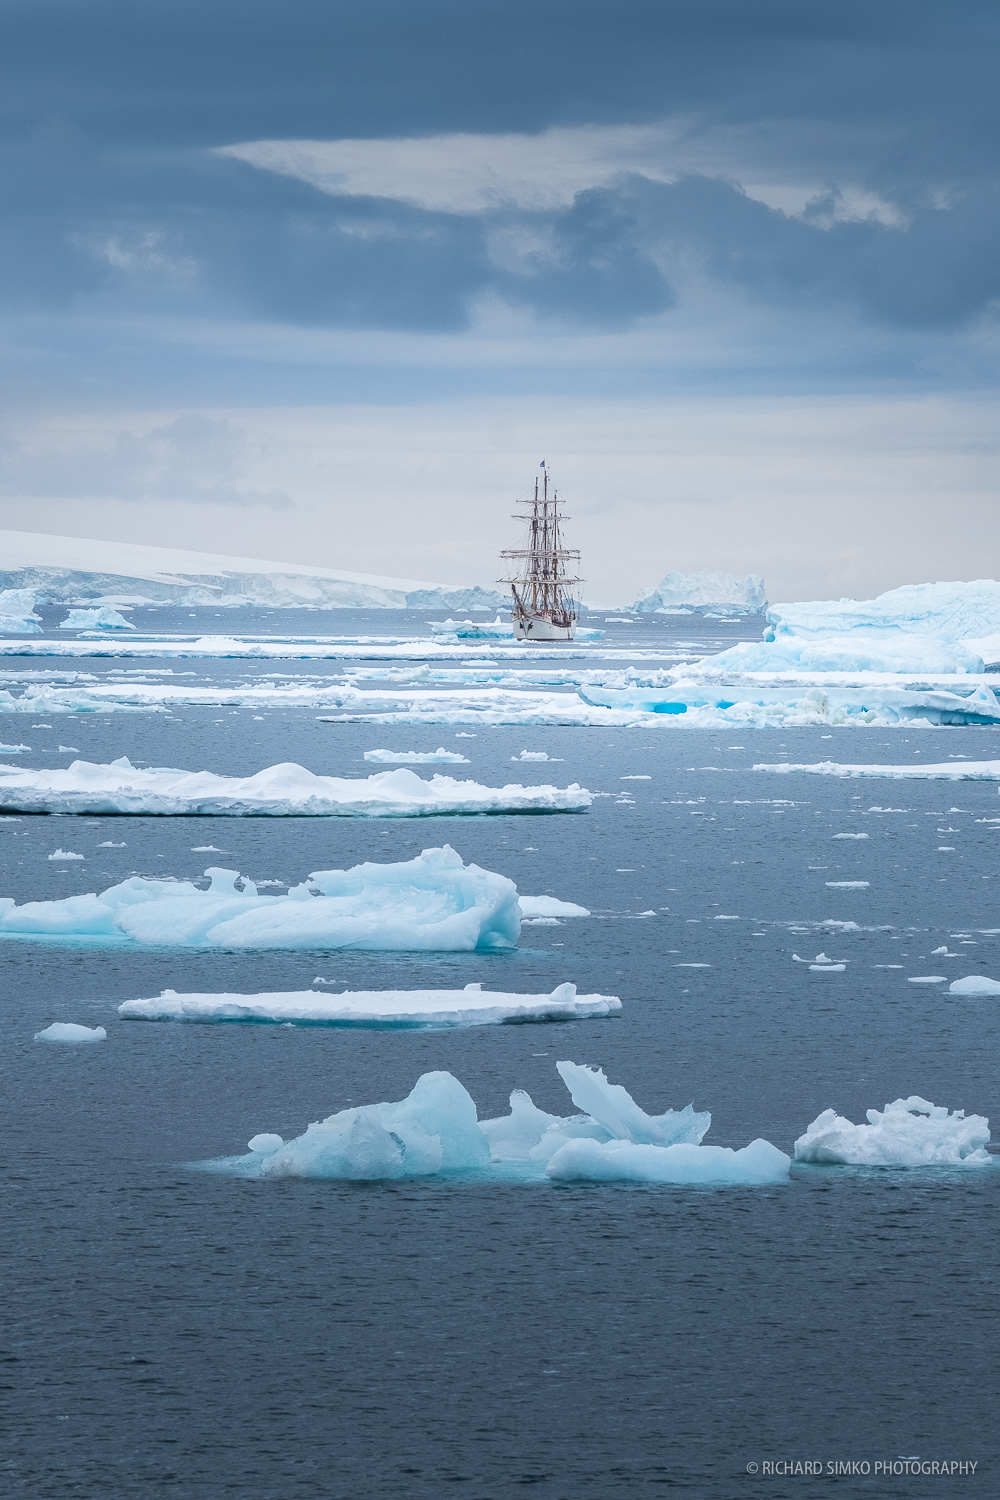 On place like this it is not possible to drop the anchor. Ice is constantly moving and so is the ship. It takes some effort from the crew to manoeuvre safely in the middle of this ice field.